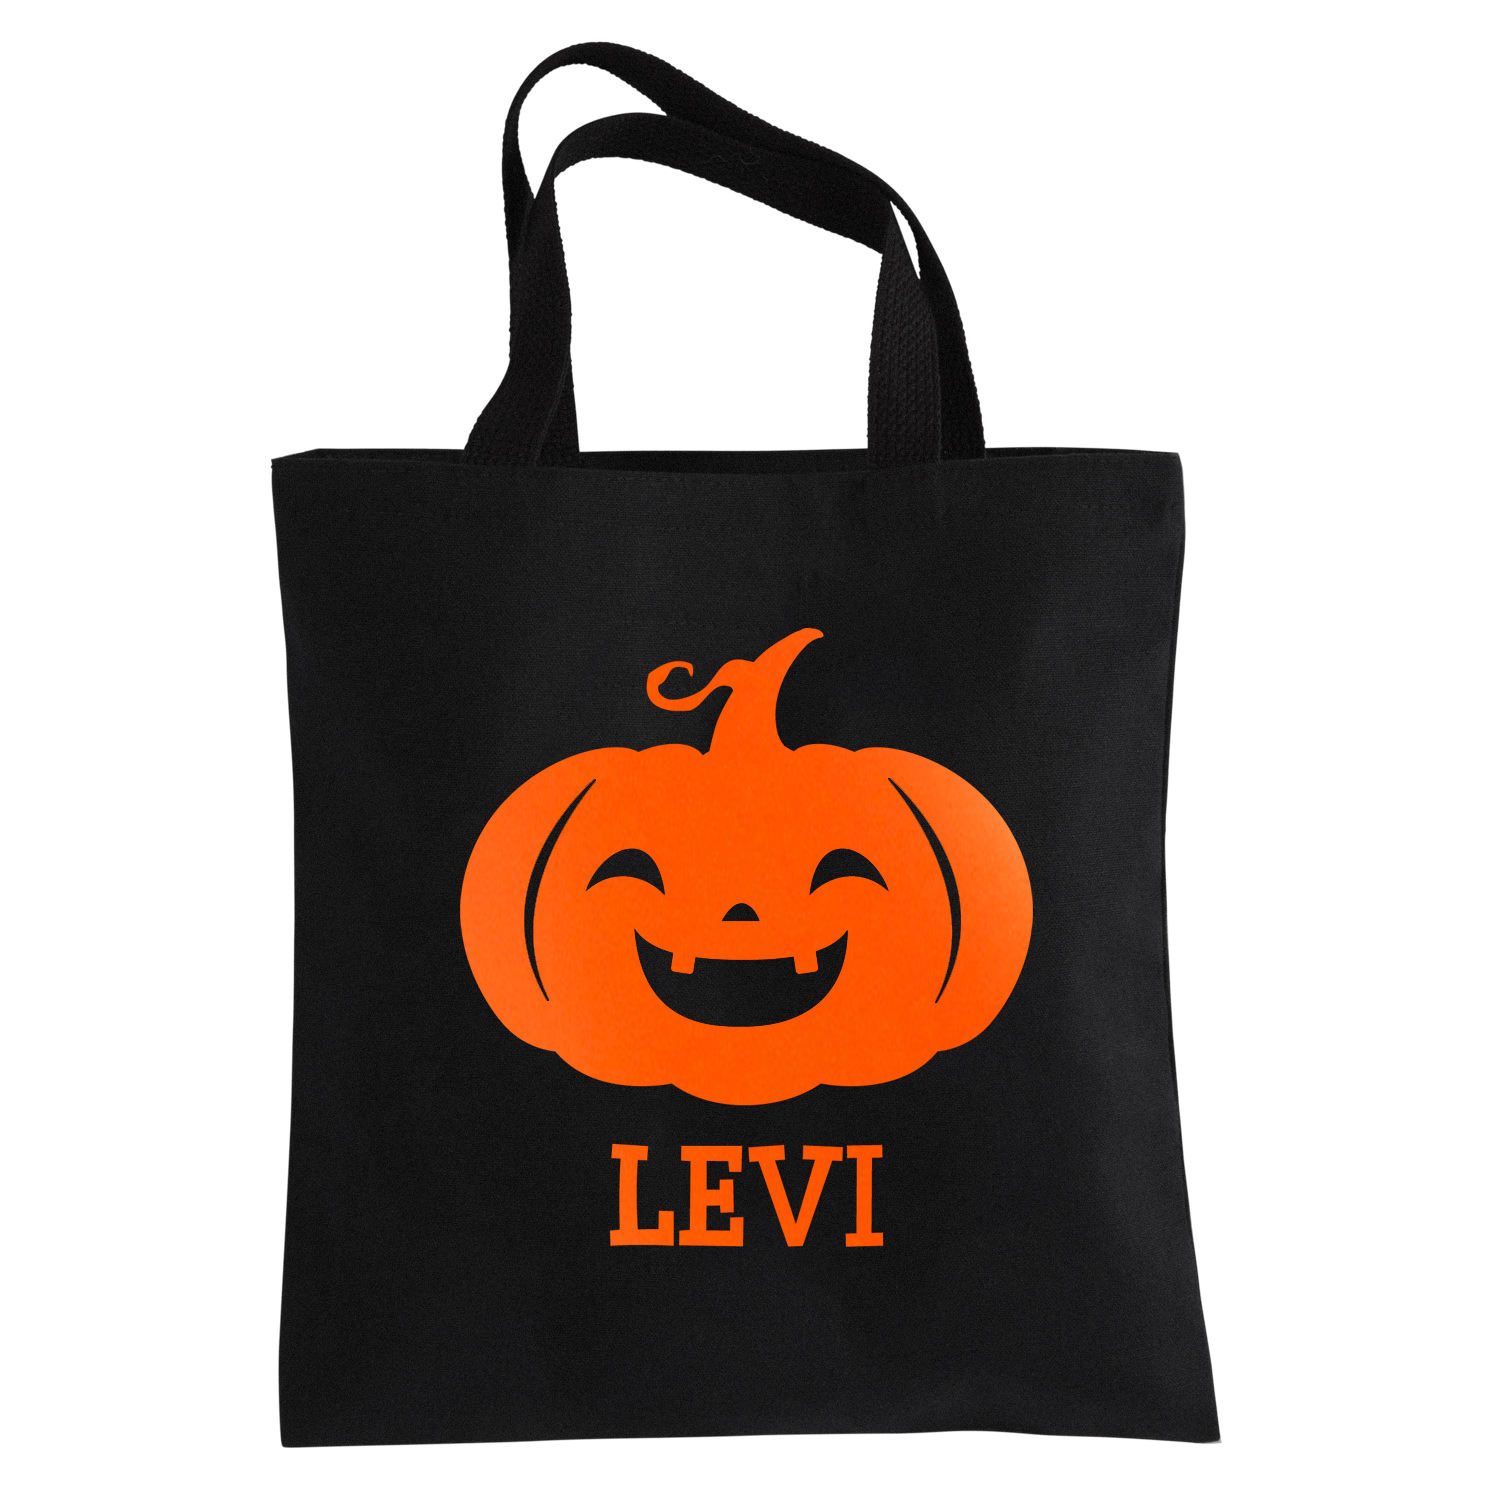 Personalized Ghostly Ghouls Halloween Reflective Treat Bag - Boy Pumpkin